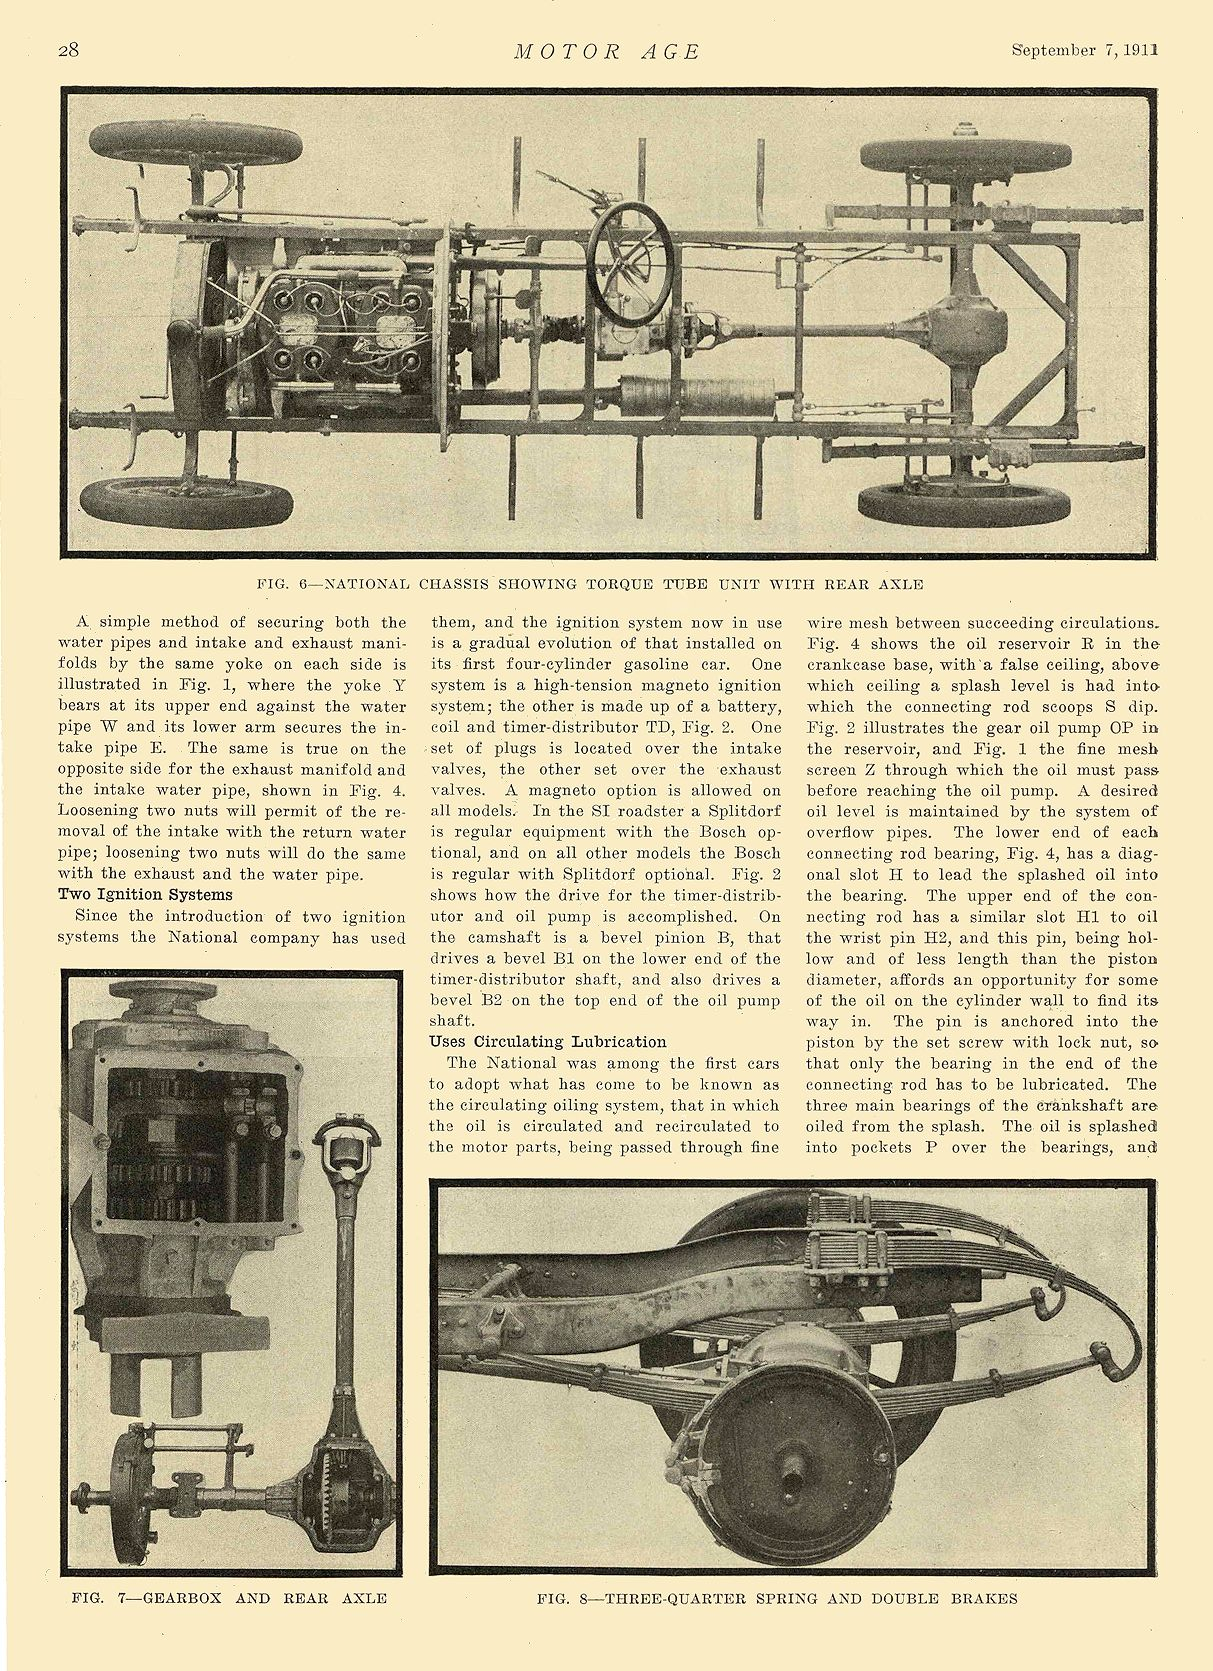 1912 9 7 NATIONAL Article The National 40—Series S National Motor Vehicle Co. Indianapolis, IND MOTOR AGE September 7, 1911 8.25″x12″ page 28